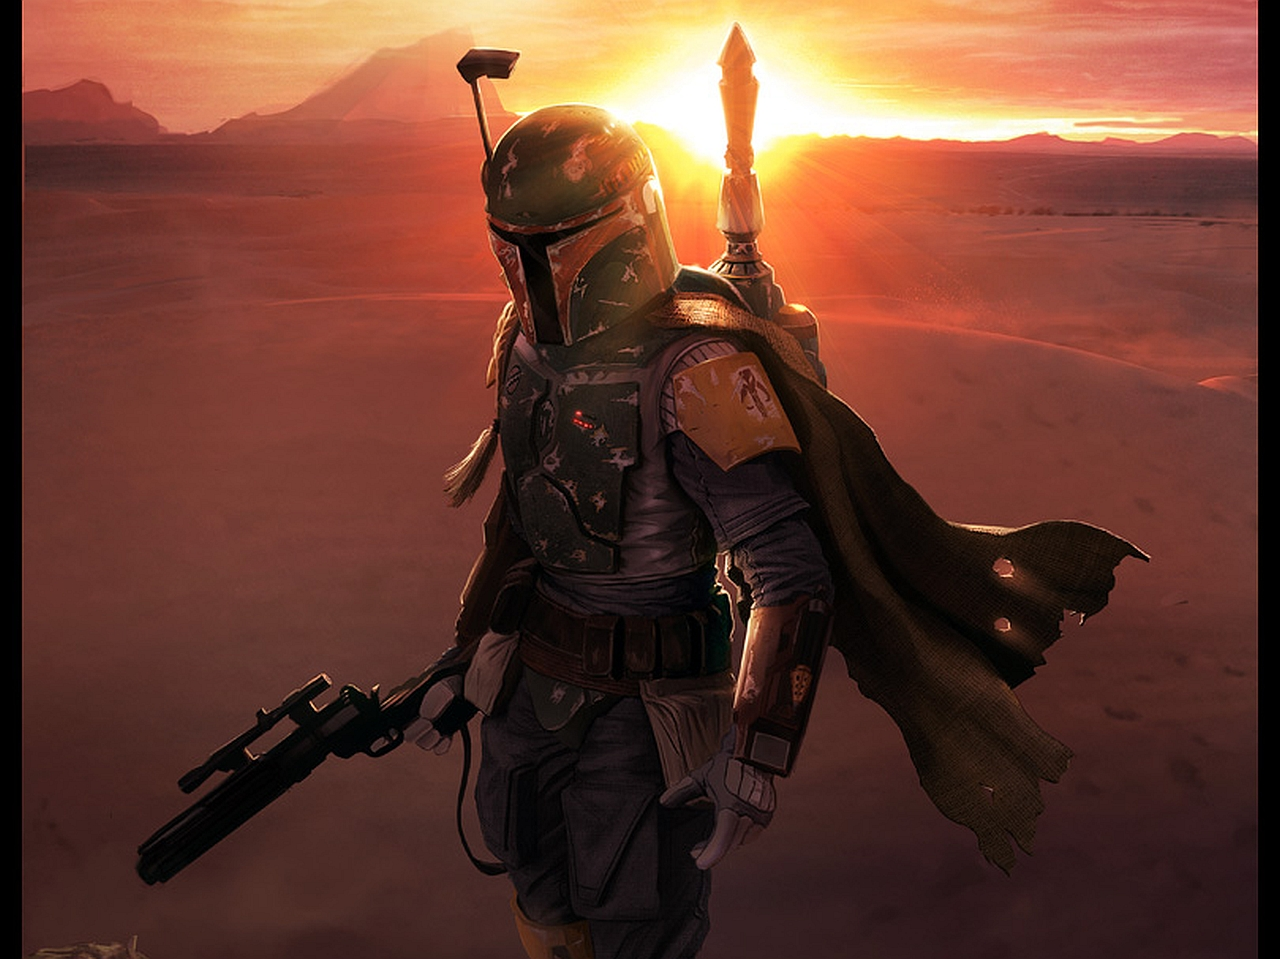 Sci Fi   Star Wars Boba Fett Wallpaper 1280x959